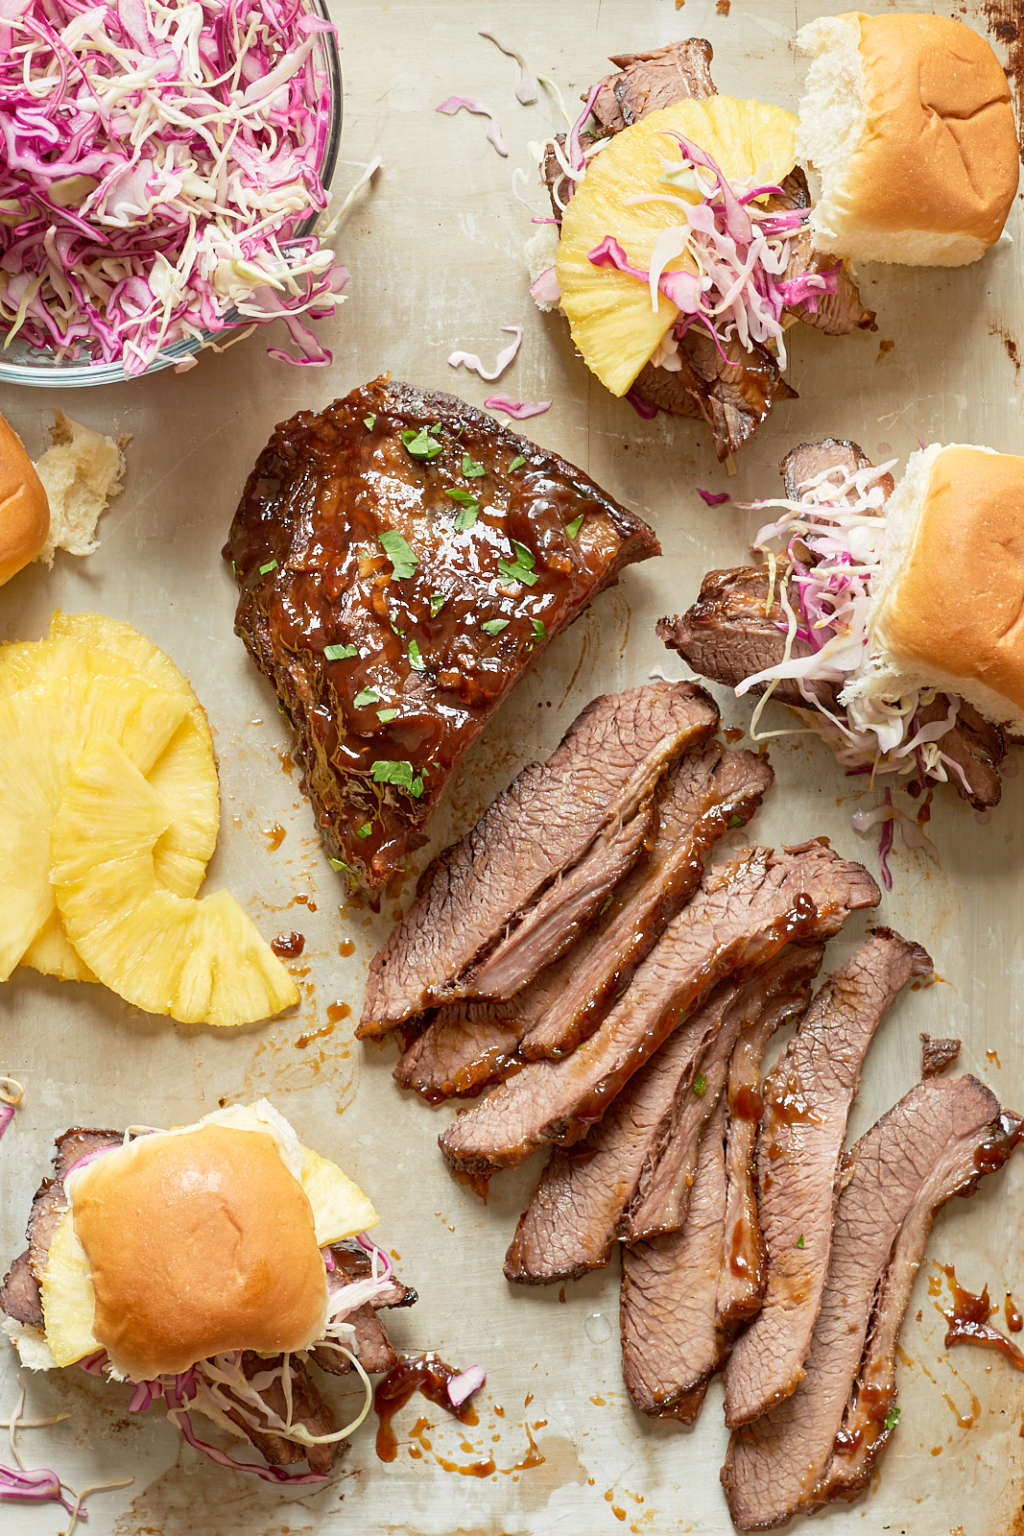 Have a Slow Cooker? Brisket Sandwiches Can Be Dinner Tonight